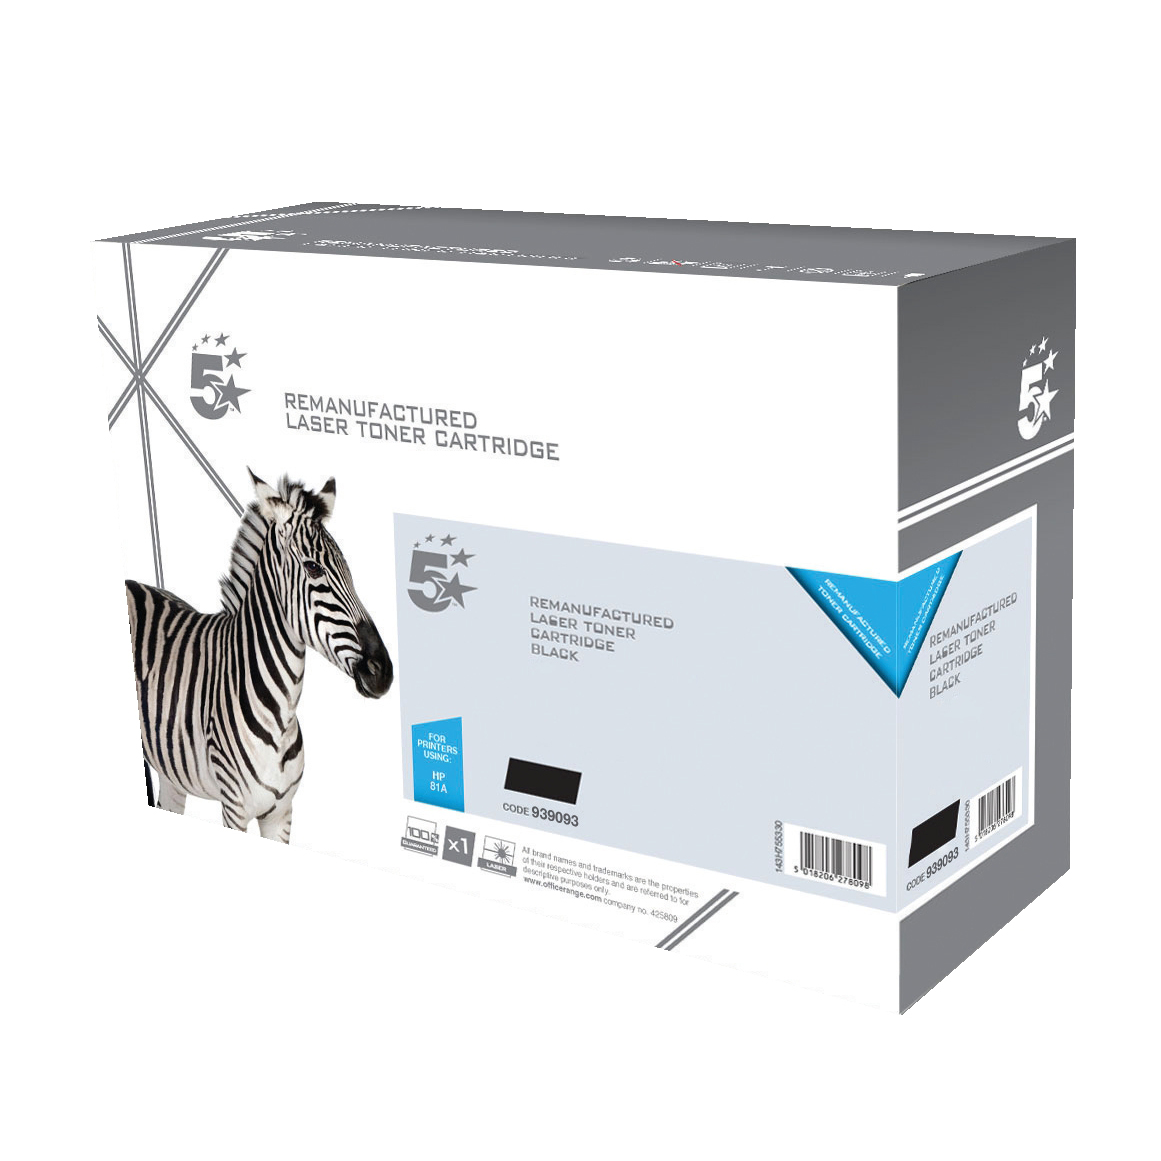 5 Star Office Remanufactured Laser Toner Cartridge HY Page Life 10500pp Black [HP CF281A Alternative]